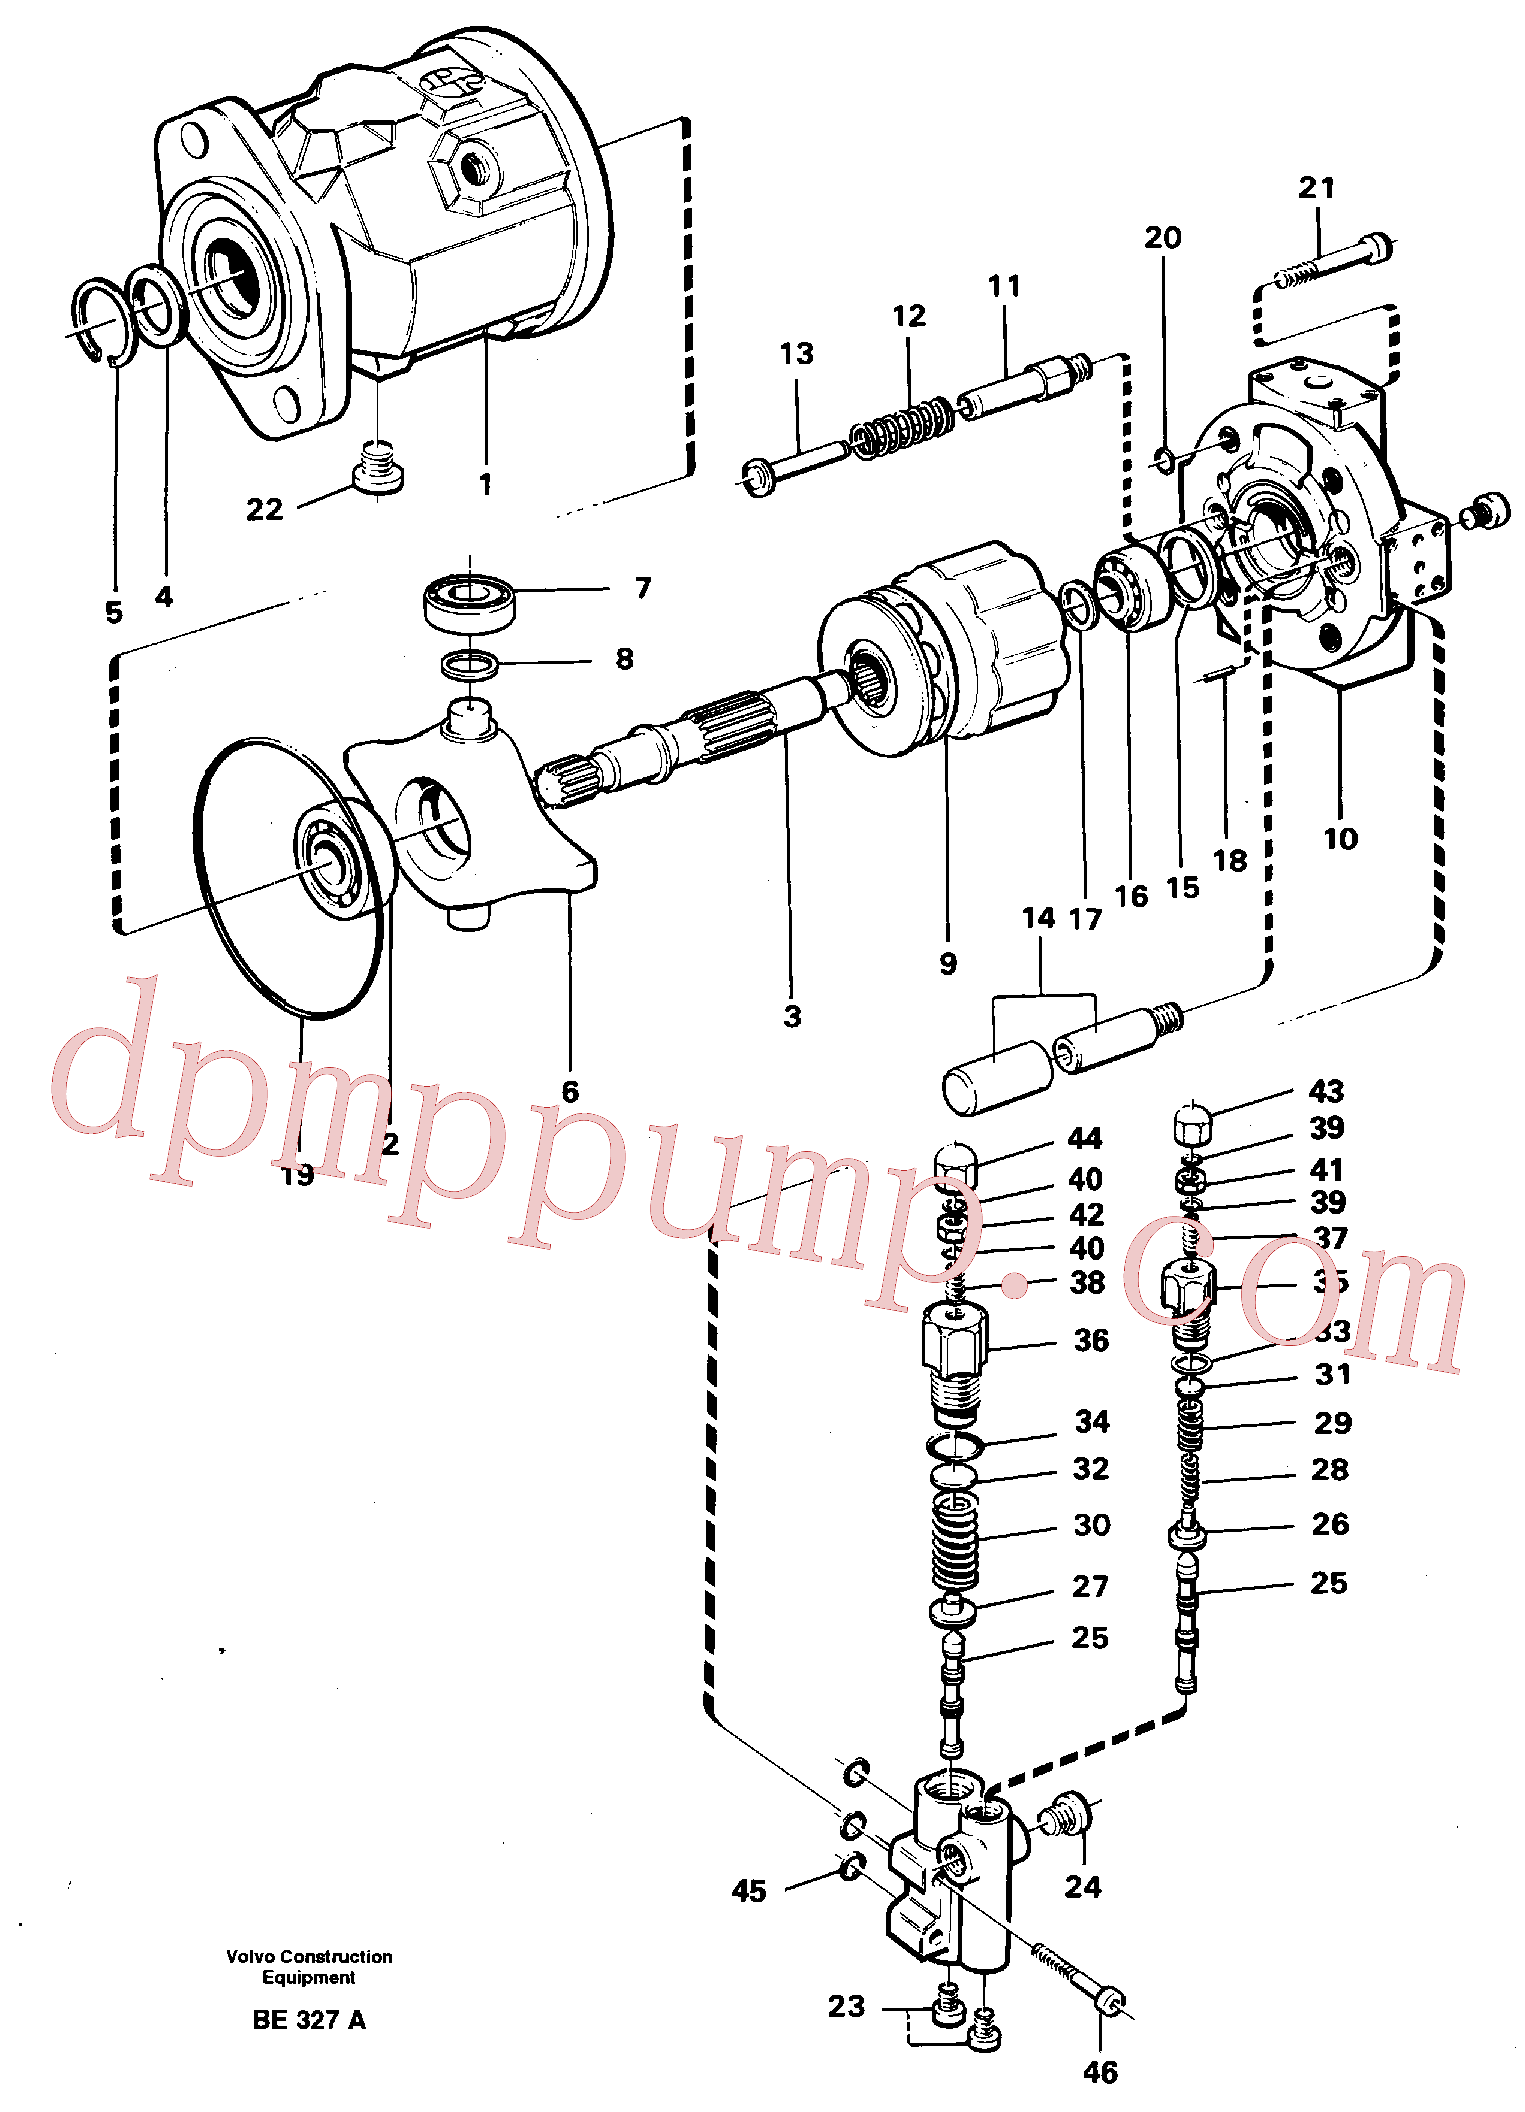 VOE11992753 for Volvo Hydraulic pump(BE327A assembly)